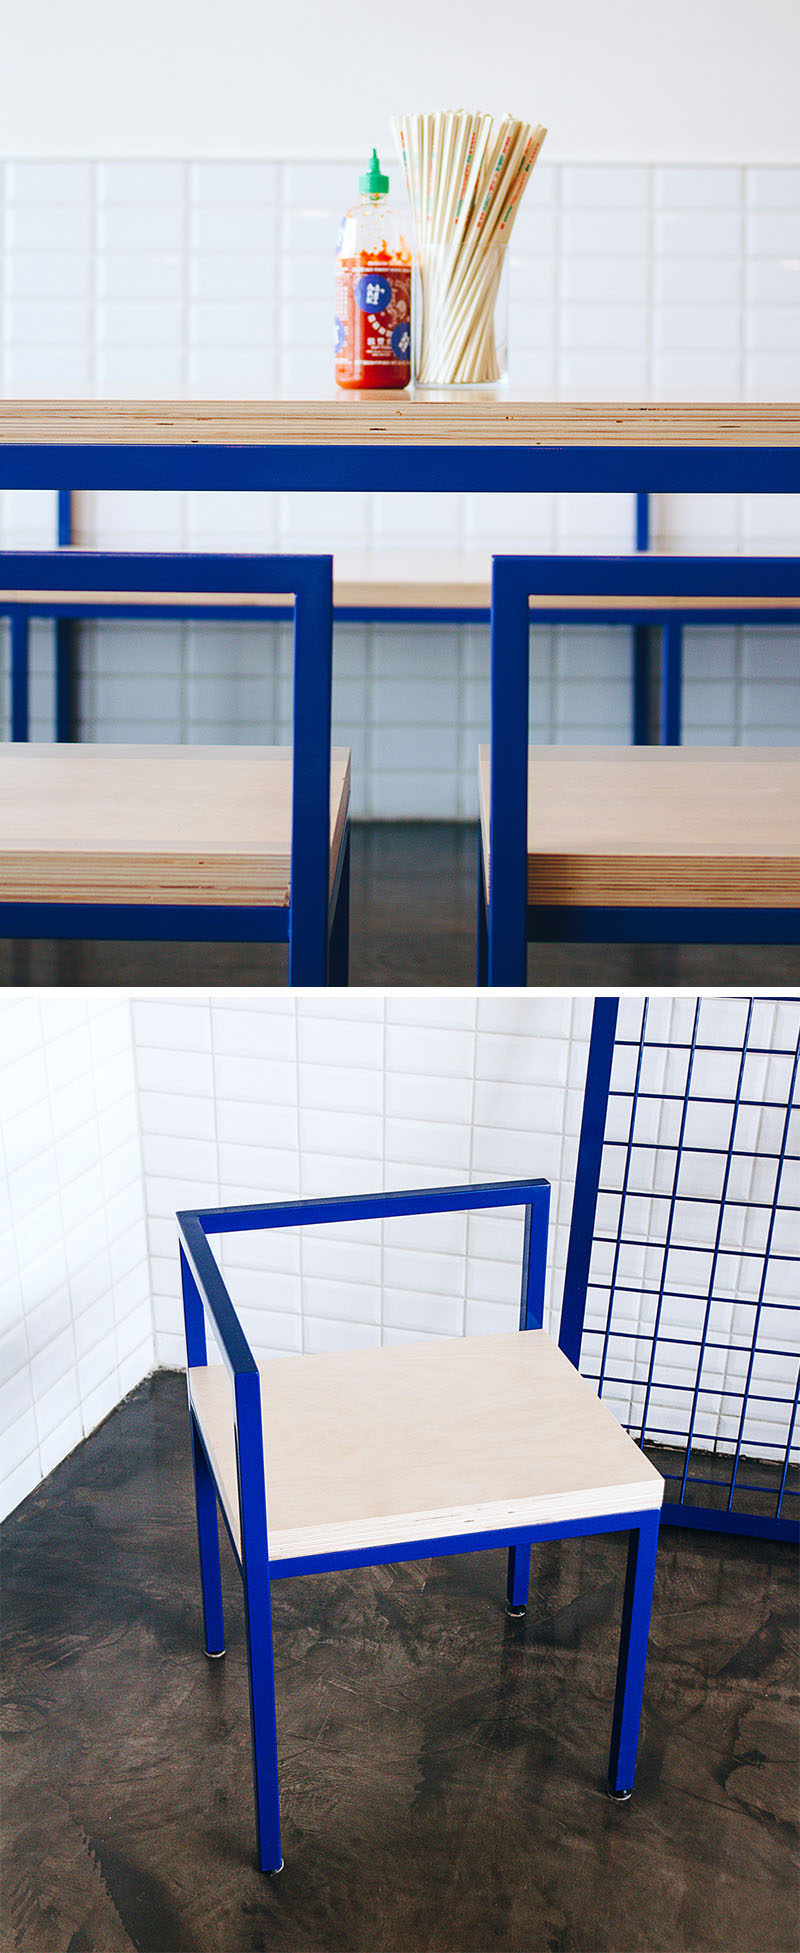 Made from plywood and blue metal frames, this modern restaurant furniture is kept simple and sturdy, with the food and conversation meant to be the focal point.